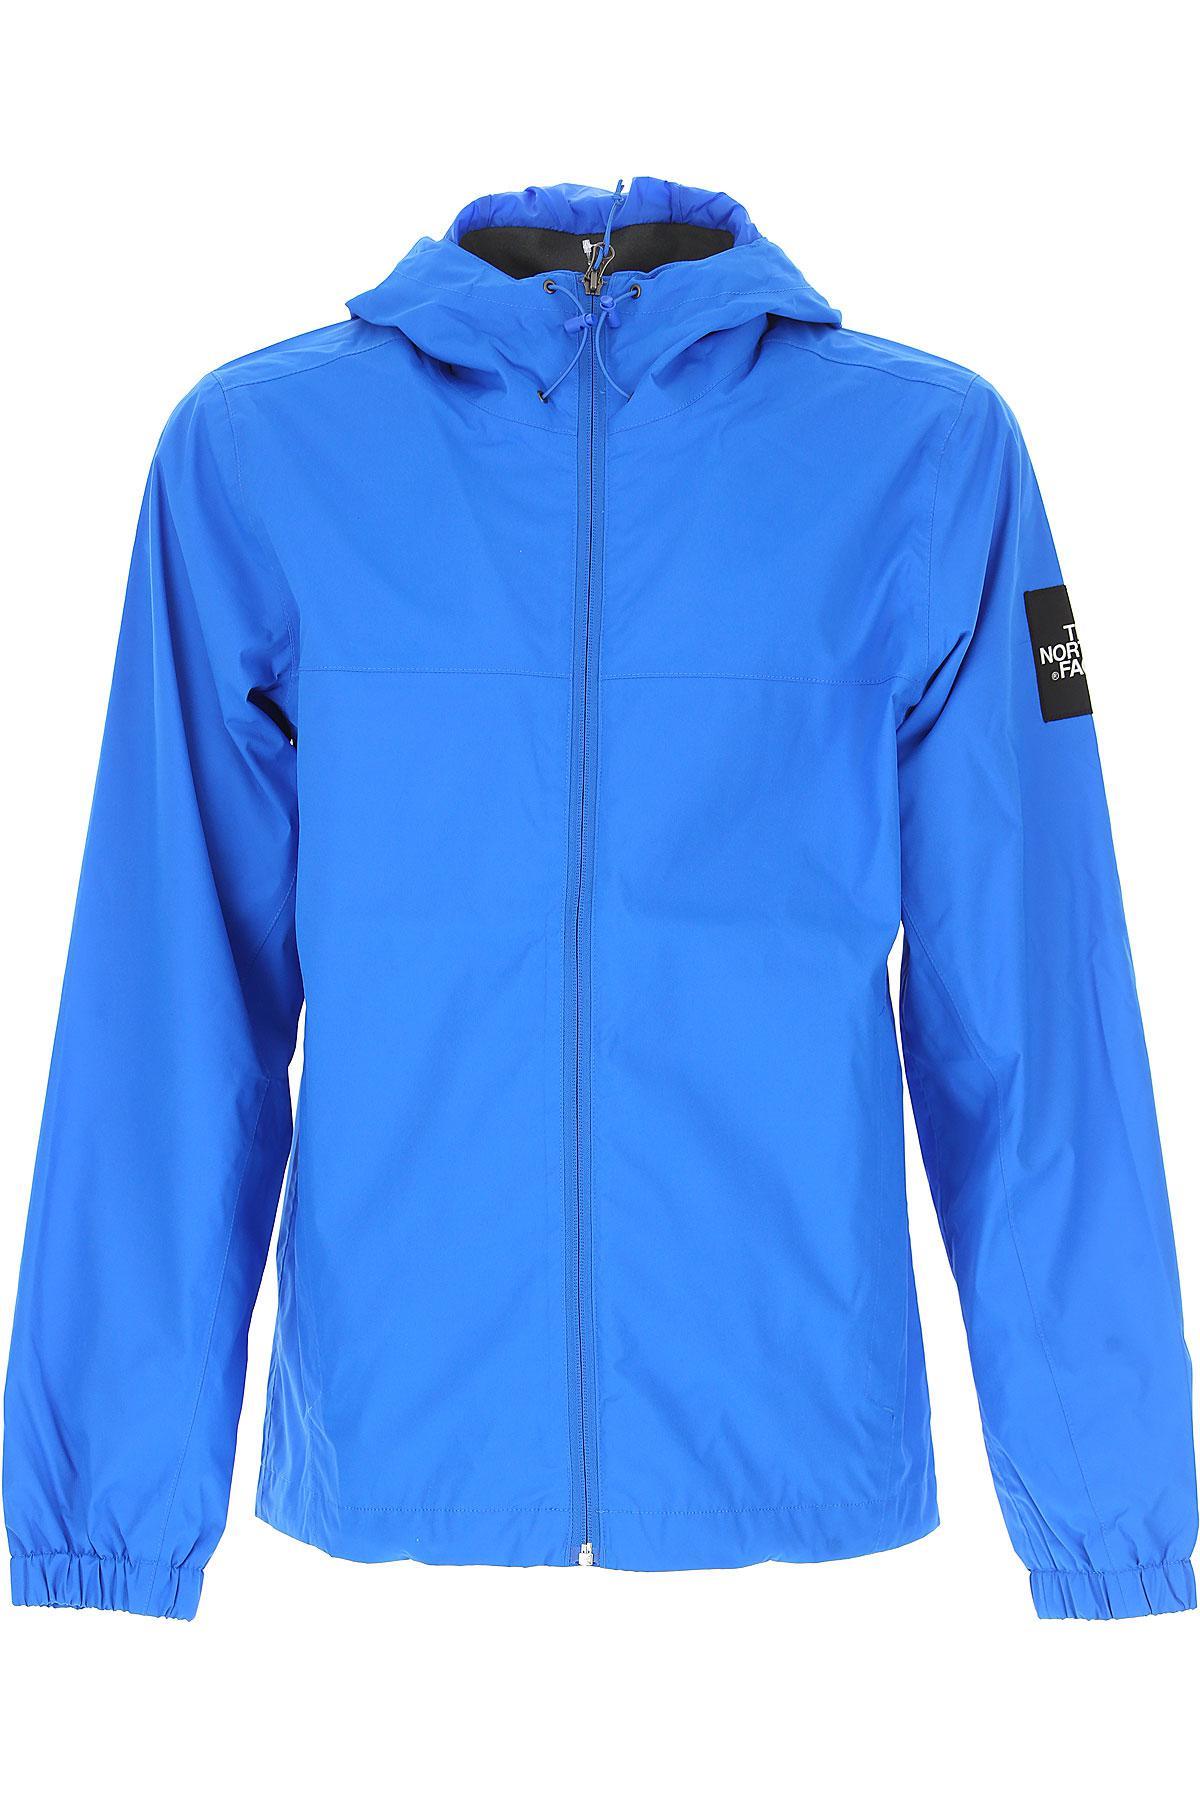 7ec2b6f1d2575 Lyst - The North Face Clothing For Men in Blue for Men